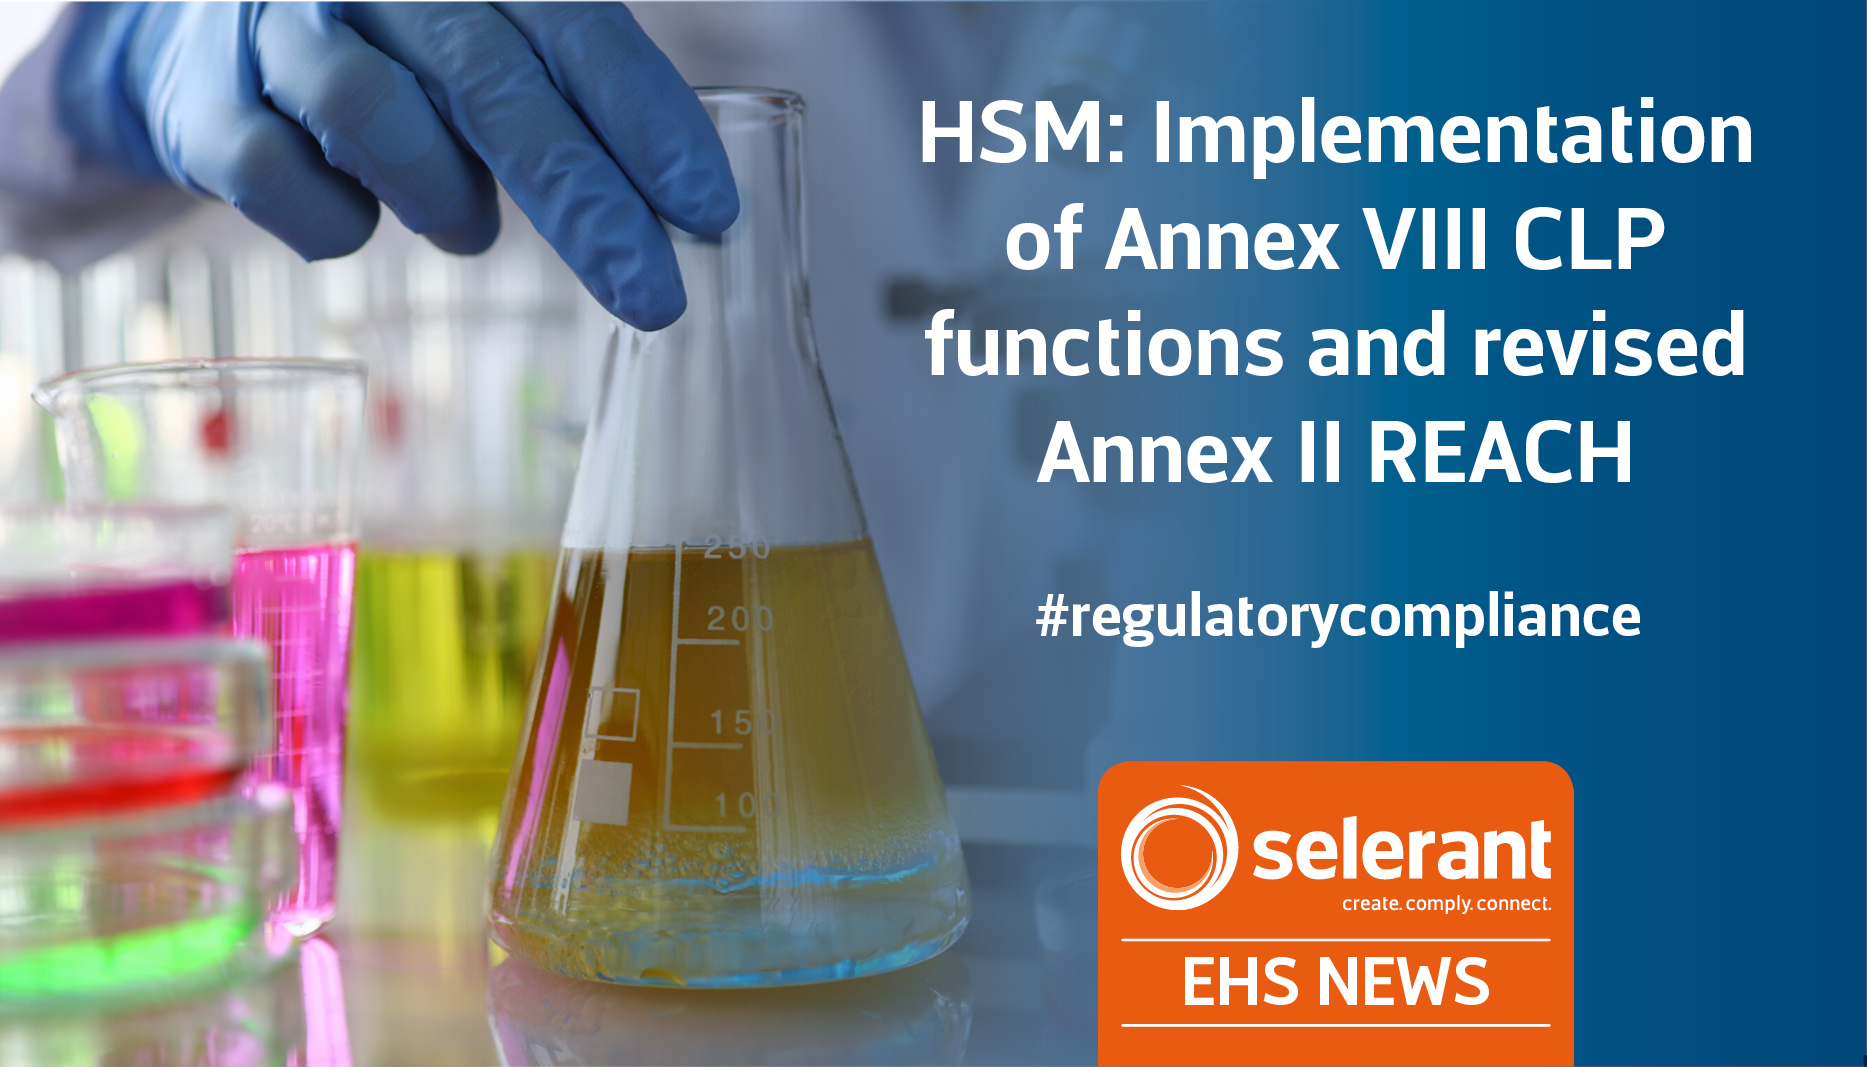 HSM: Implementation of Annex VIII CLP functions and revised Annex II REACH